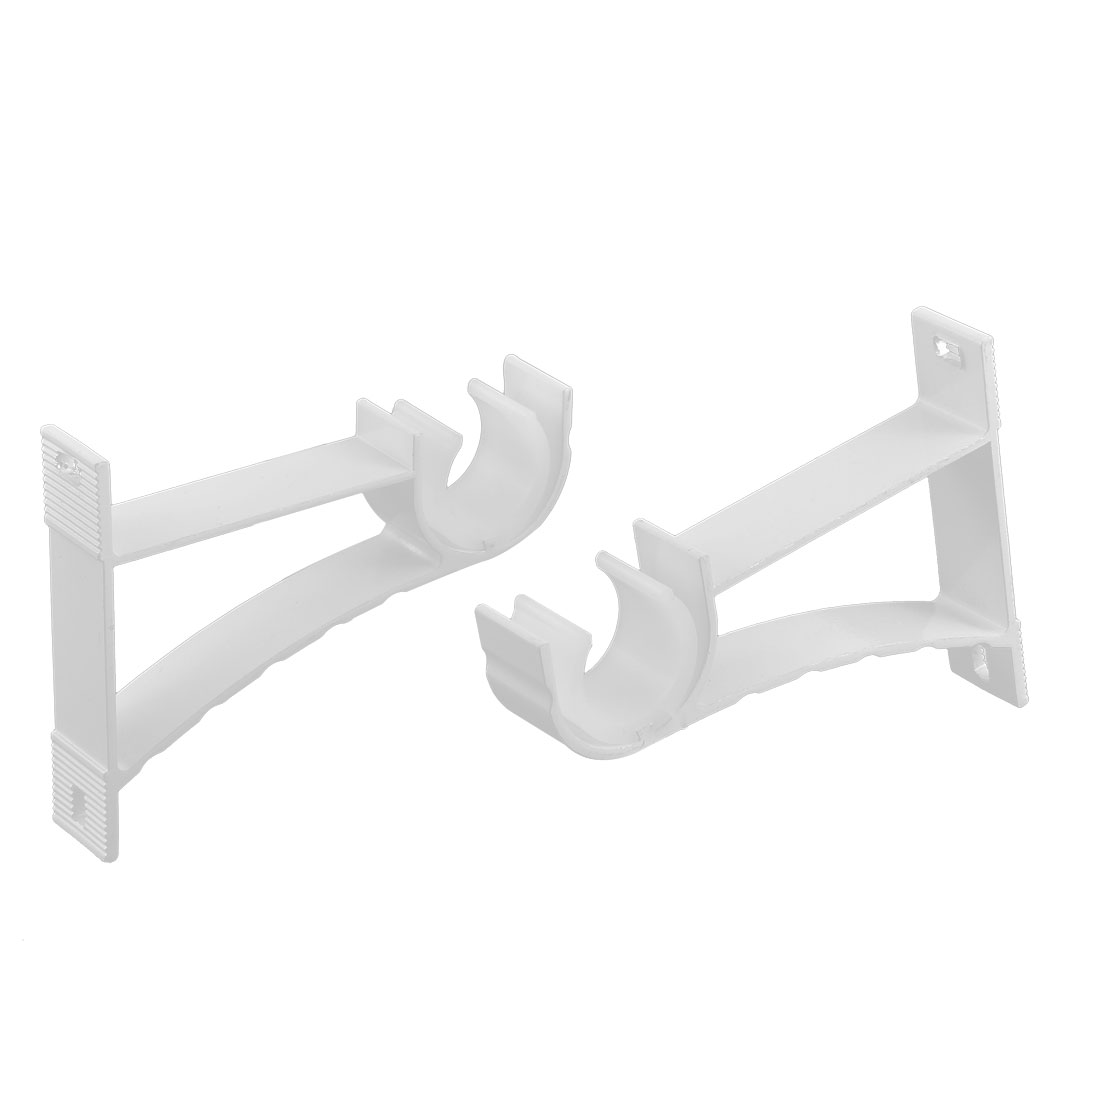 Drapery Curtain Wall Mount Pole Rod Bracket White 22mm Dia 6pcs